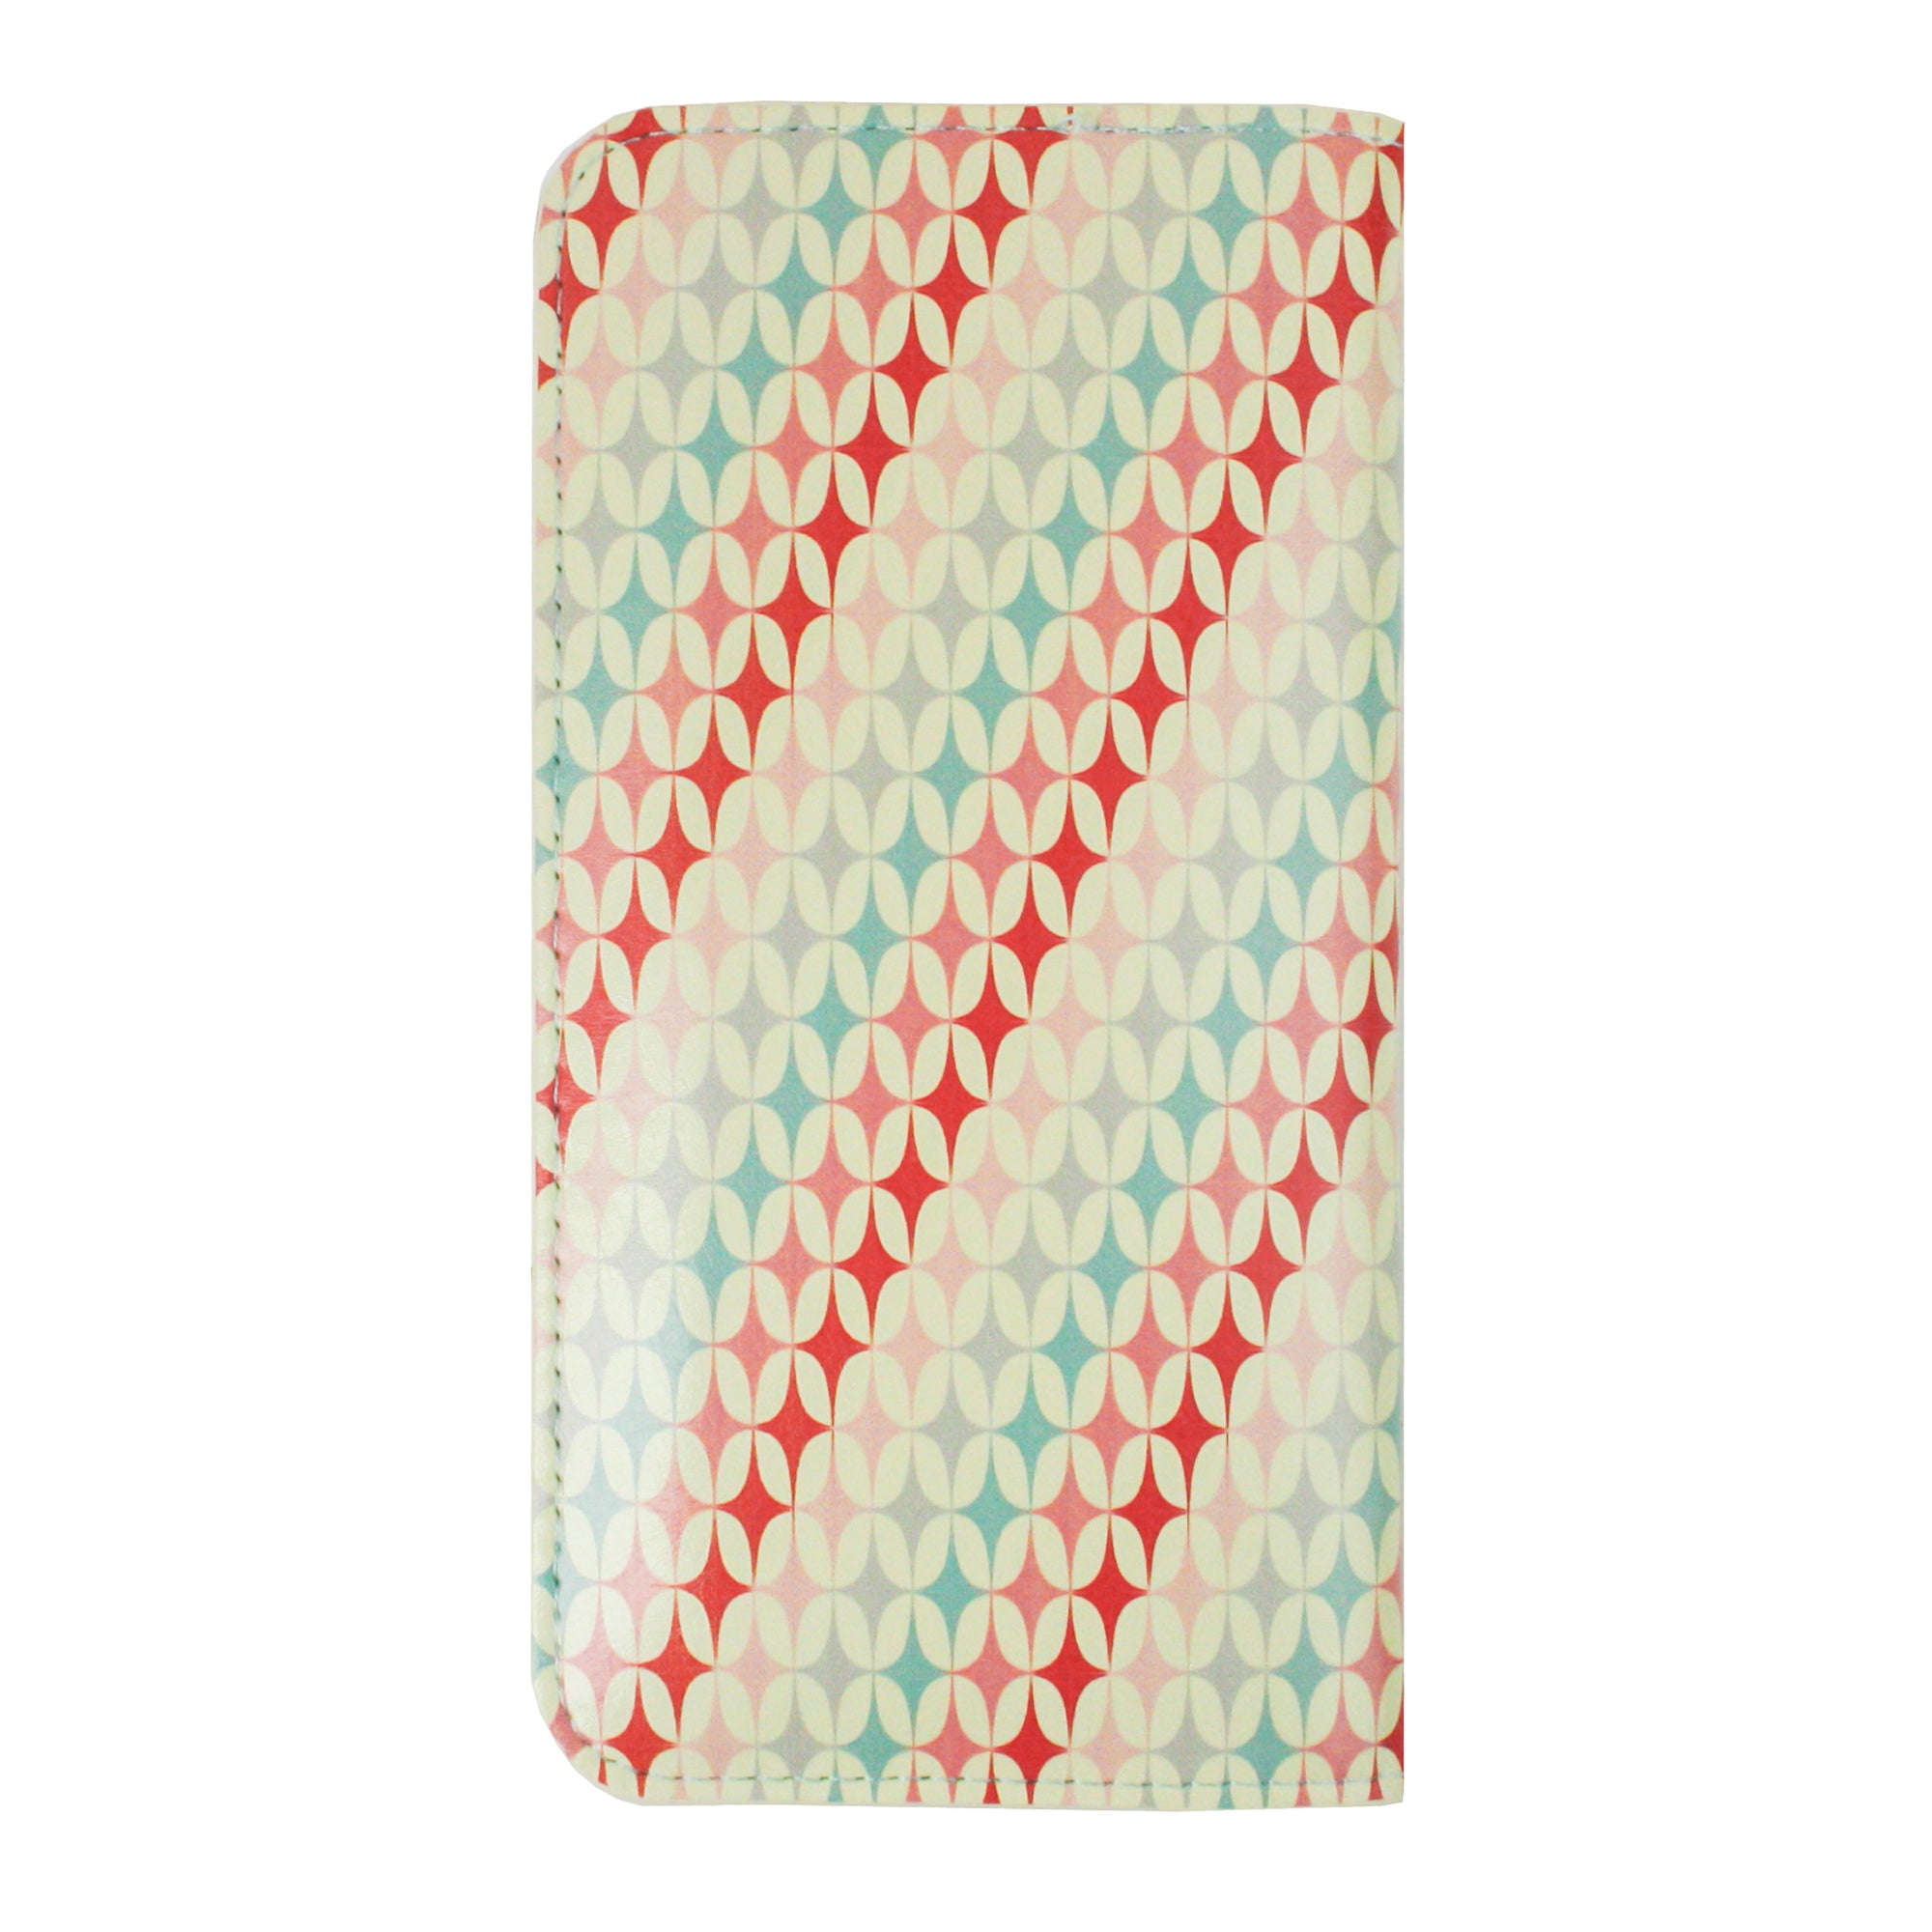 MAGNETIC PHONE WALLET - MULTI STAR